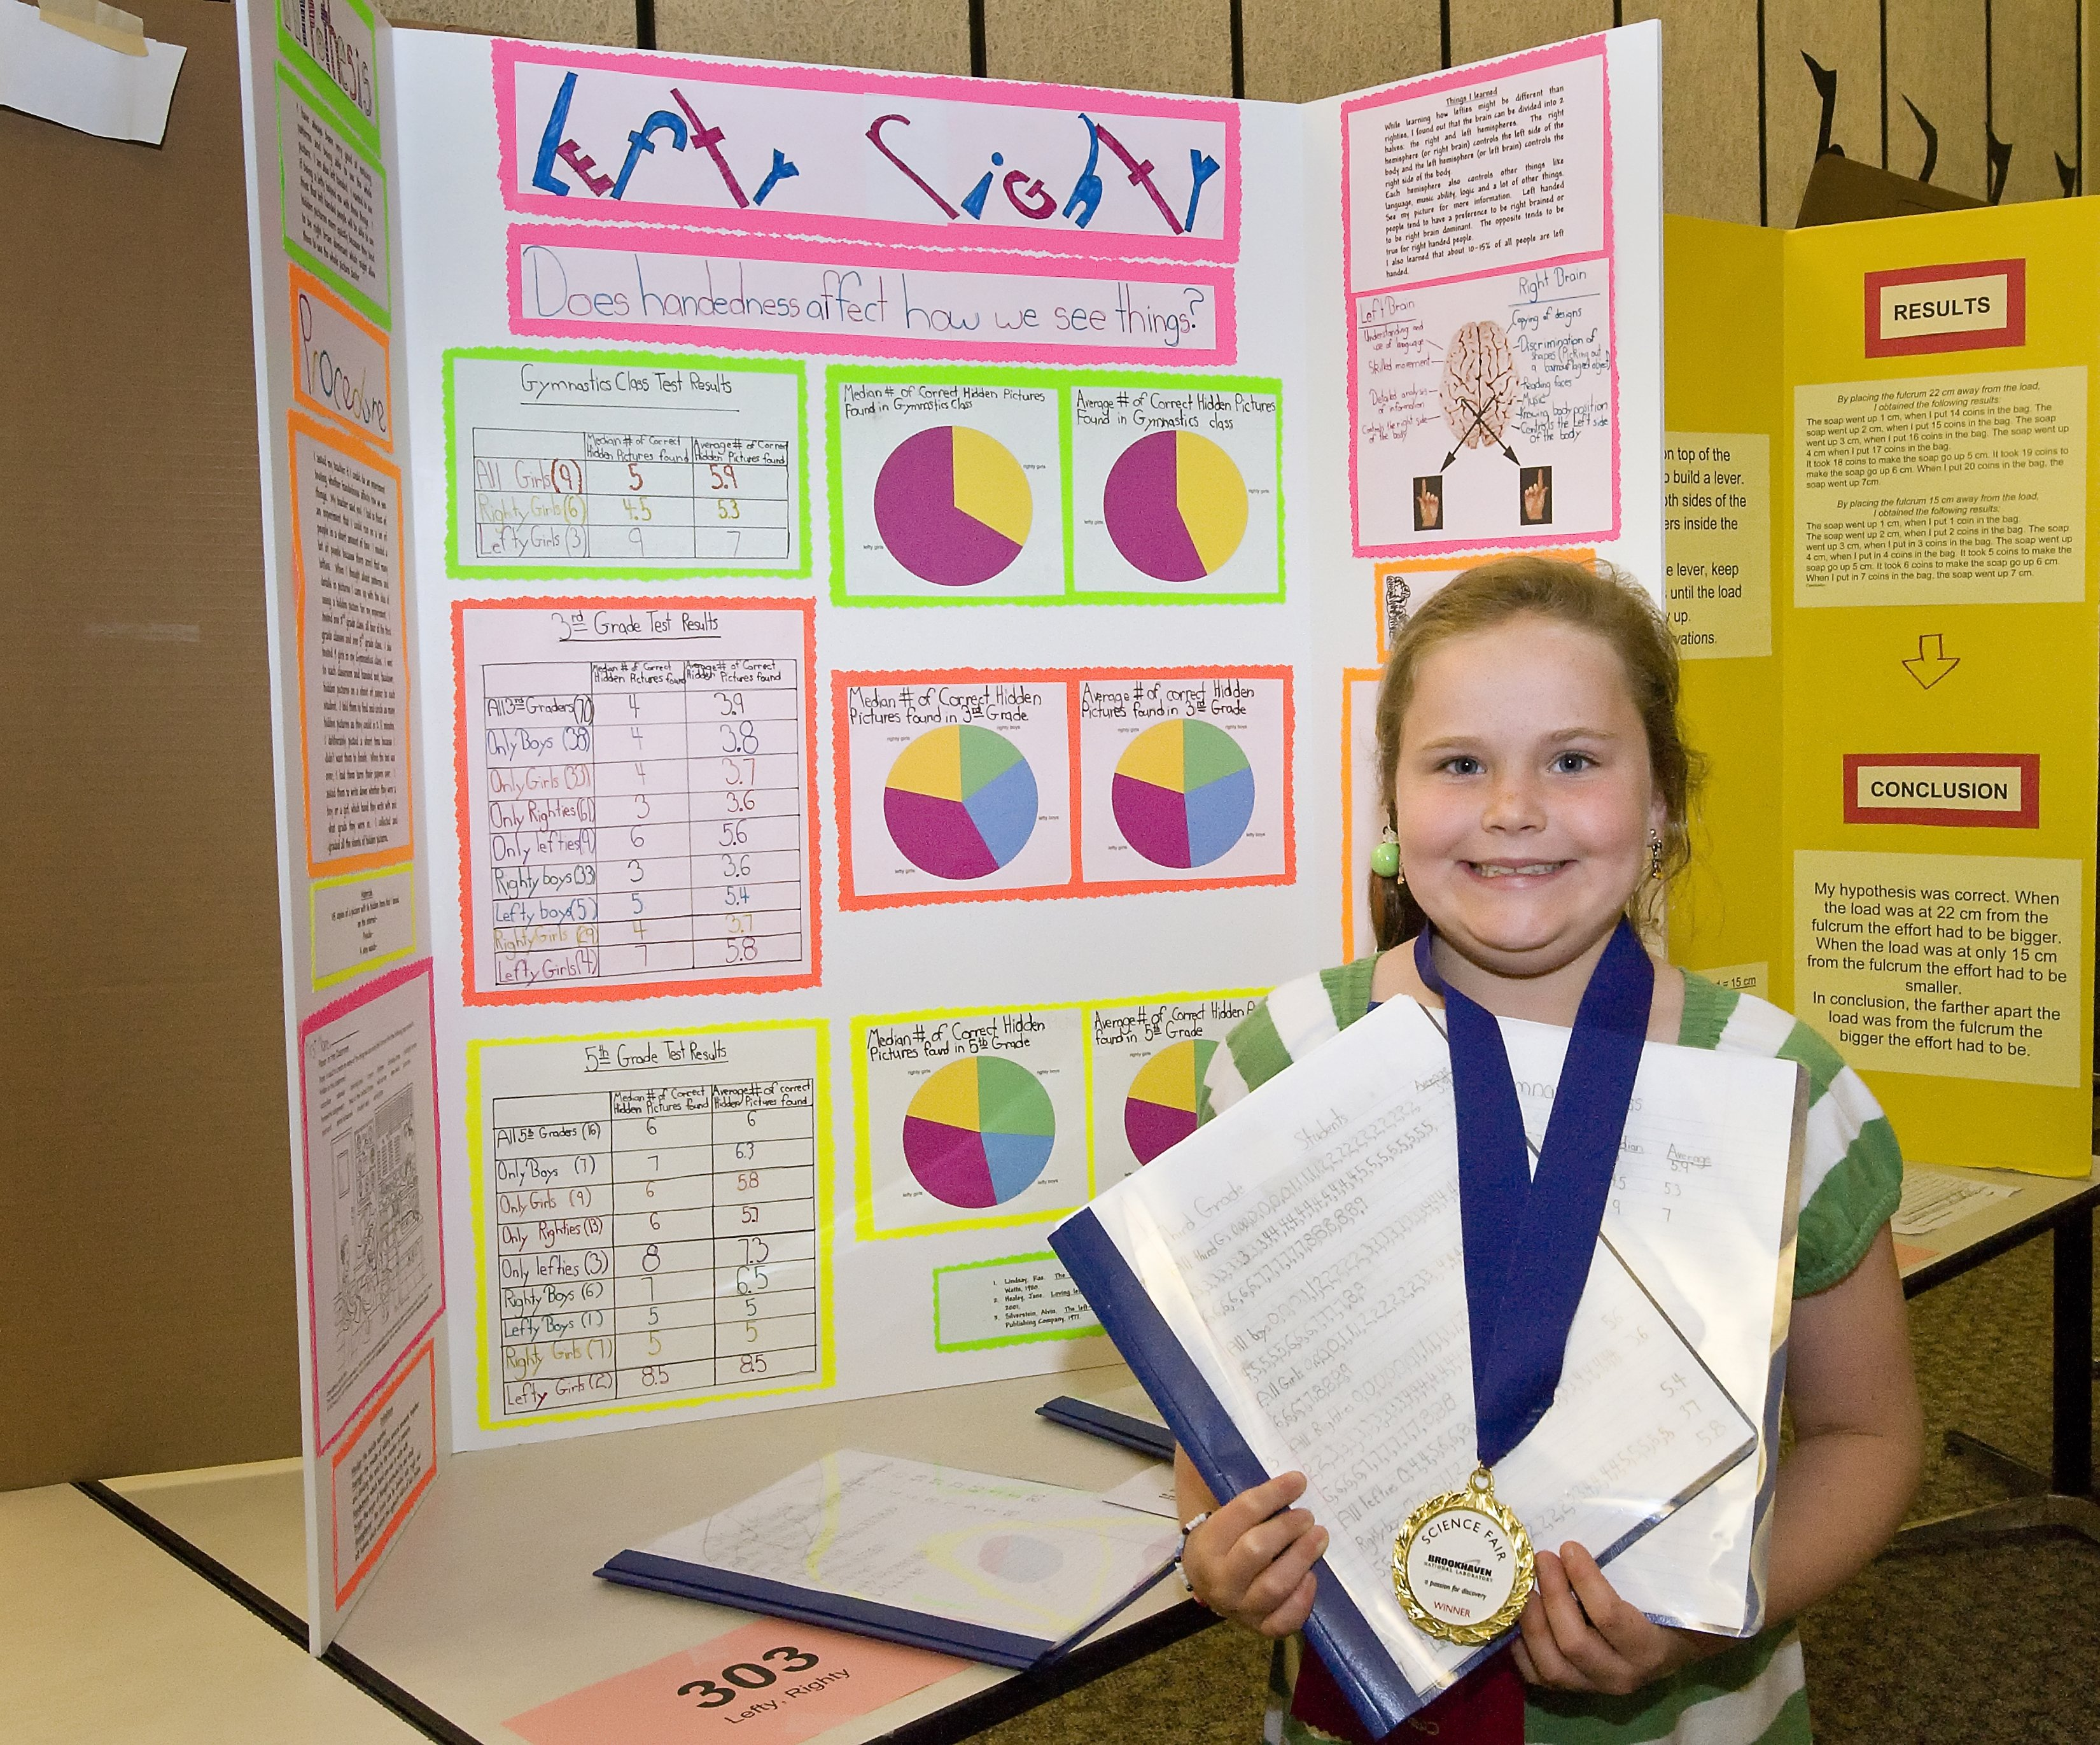 10 Awesome Second Grade Science Fair Project Ideas fascinating second grade science fair project ideas also science 5 2020